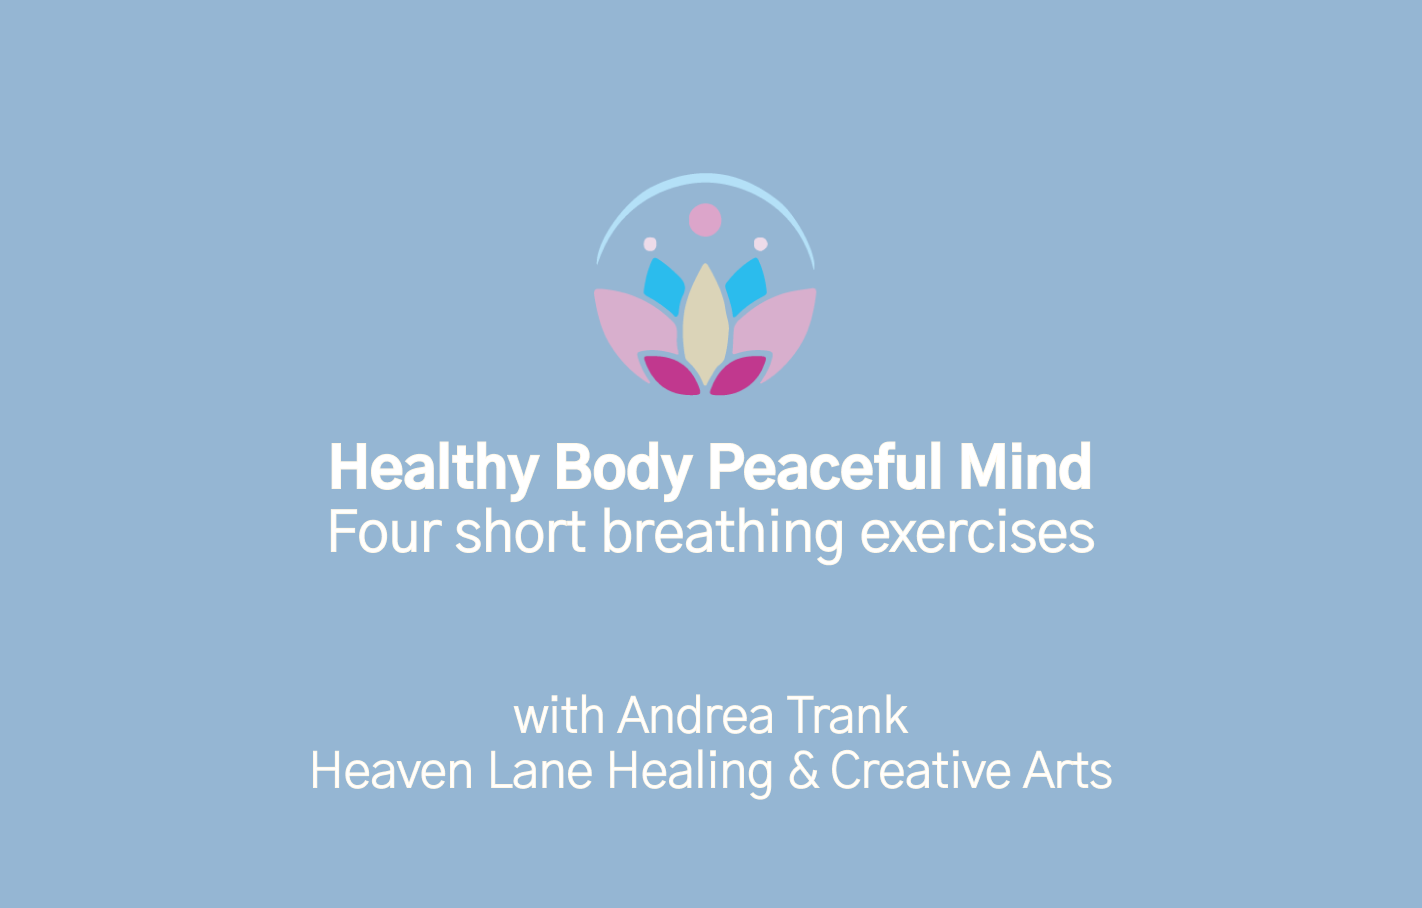 7. Four short breathing exercises